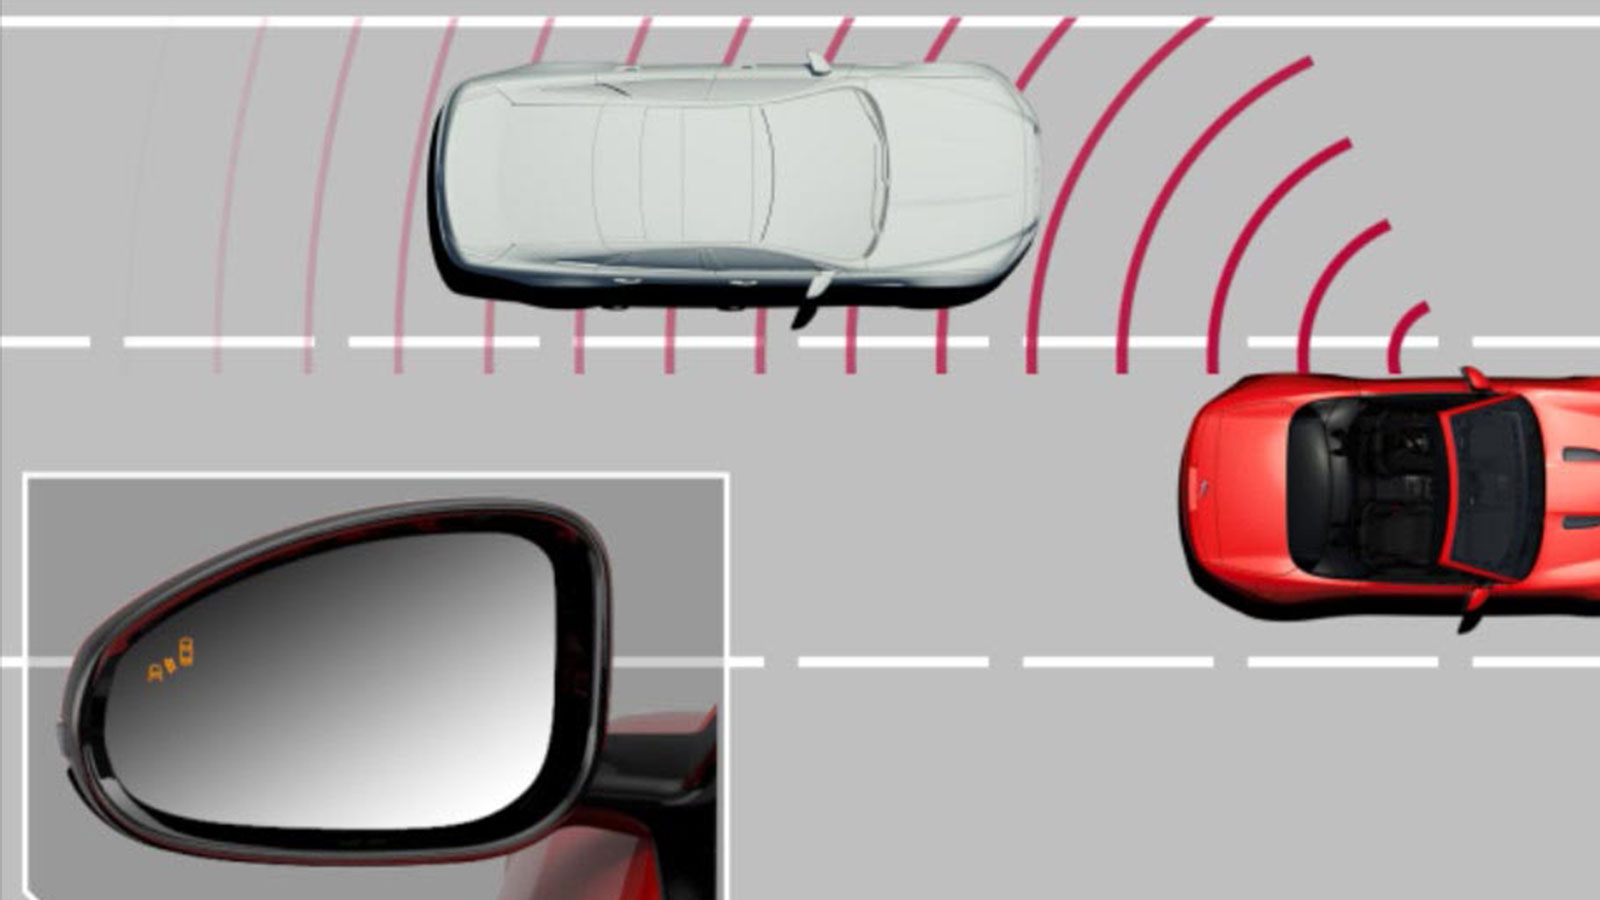 Diagram of Jaguar F-Type Blind Spot Monitoring Detecting Other Vehicles.